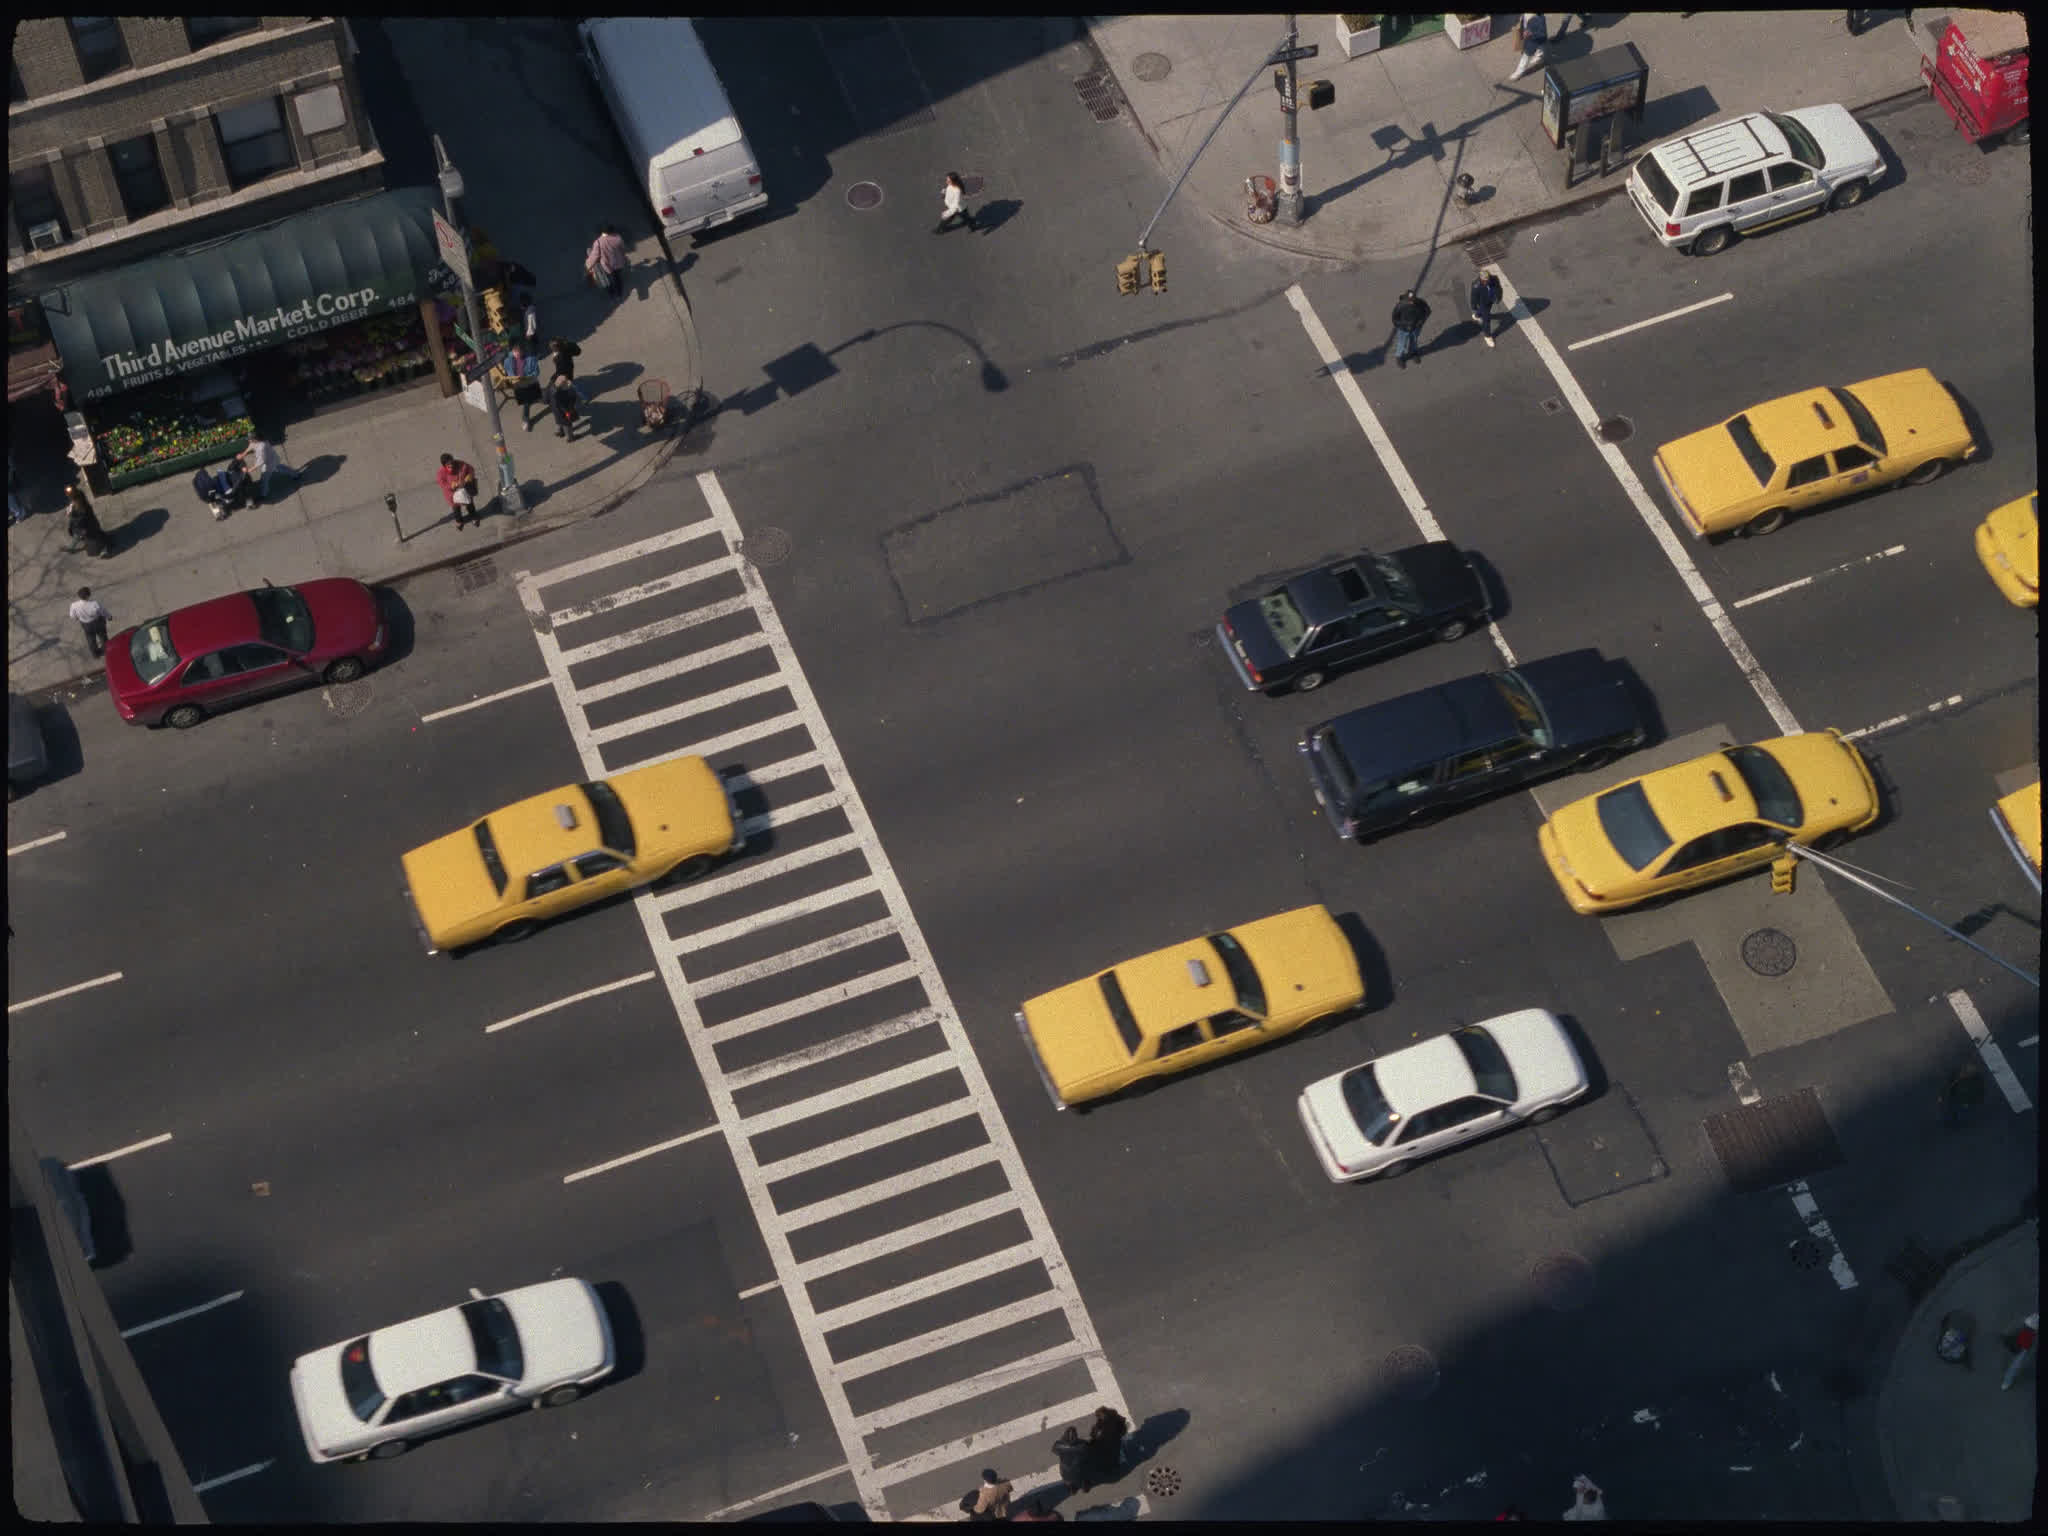 New York Traffic Birds Eye View Archive Film Footage R3el The